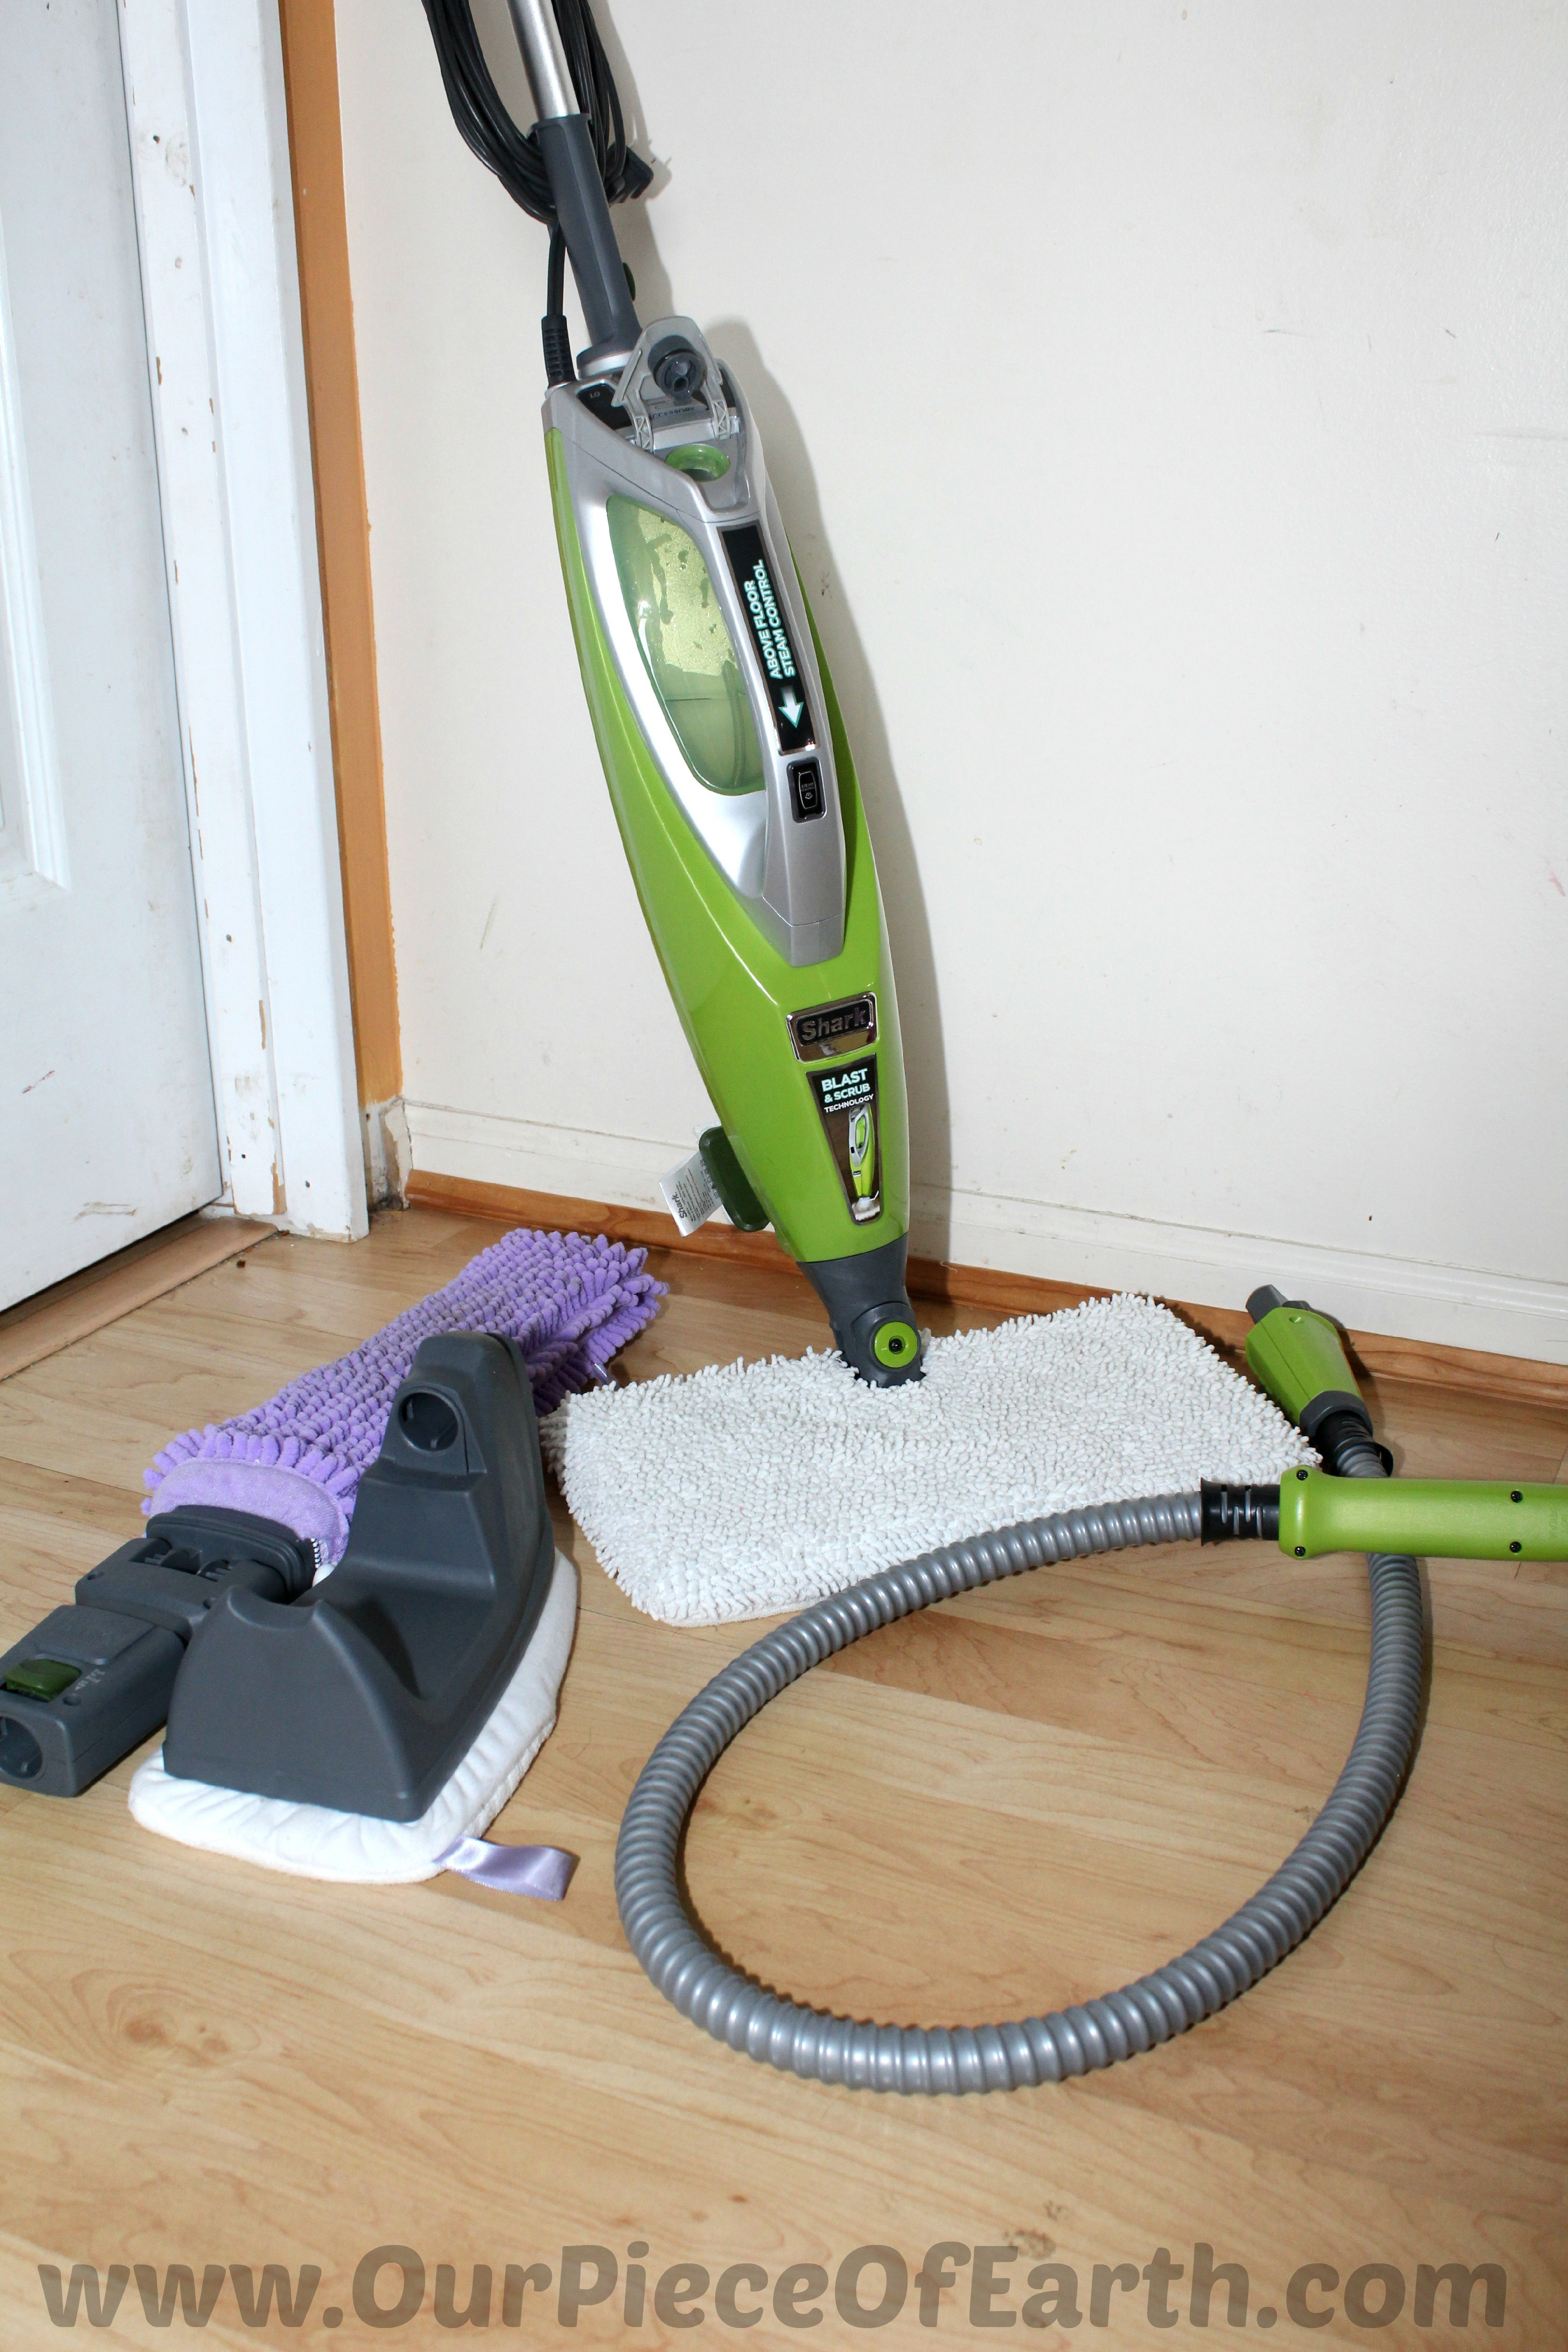 the shark hardwood floor cleaner of 19 awesome steam clean hardwood floors images dizpos com within steam clean hardwood floors best of 30 new pics shark steam mop hardwood floors pics of